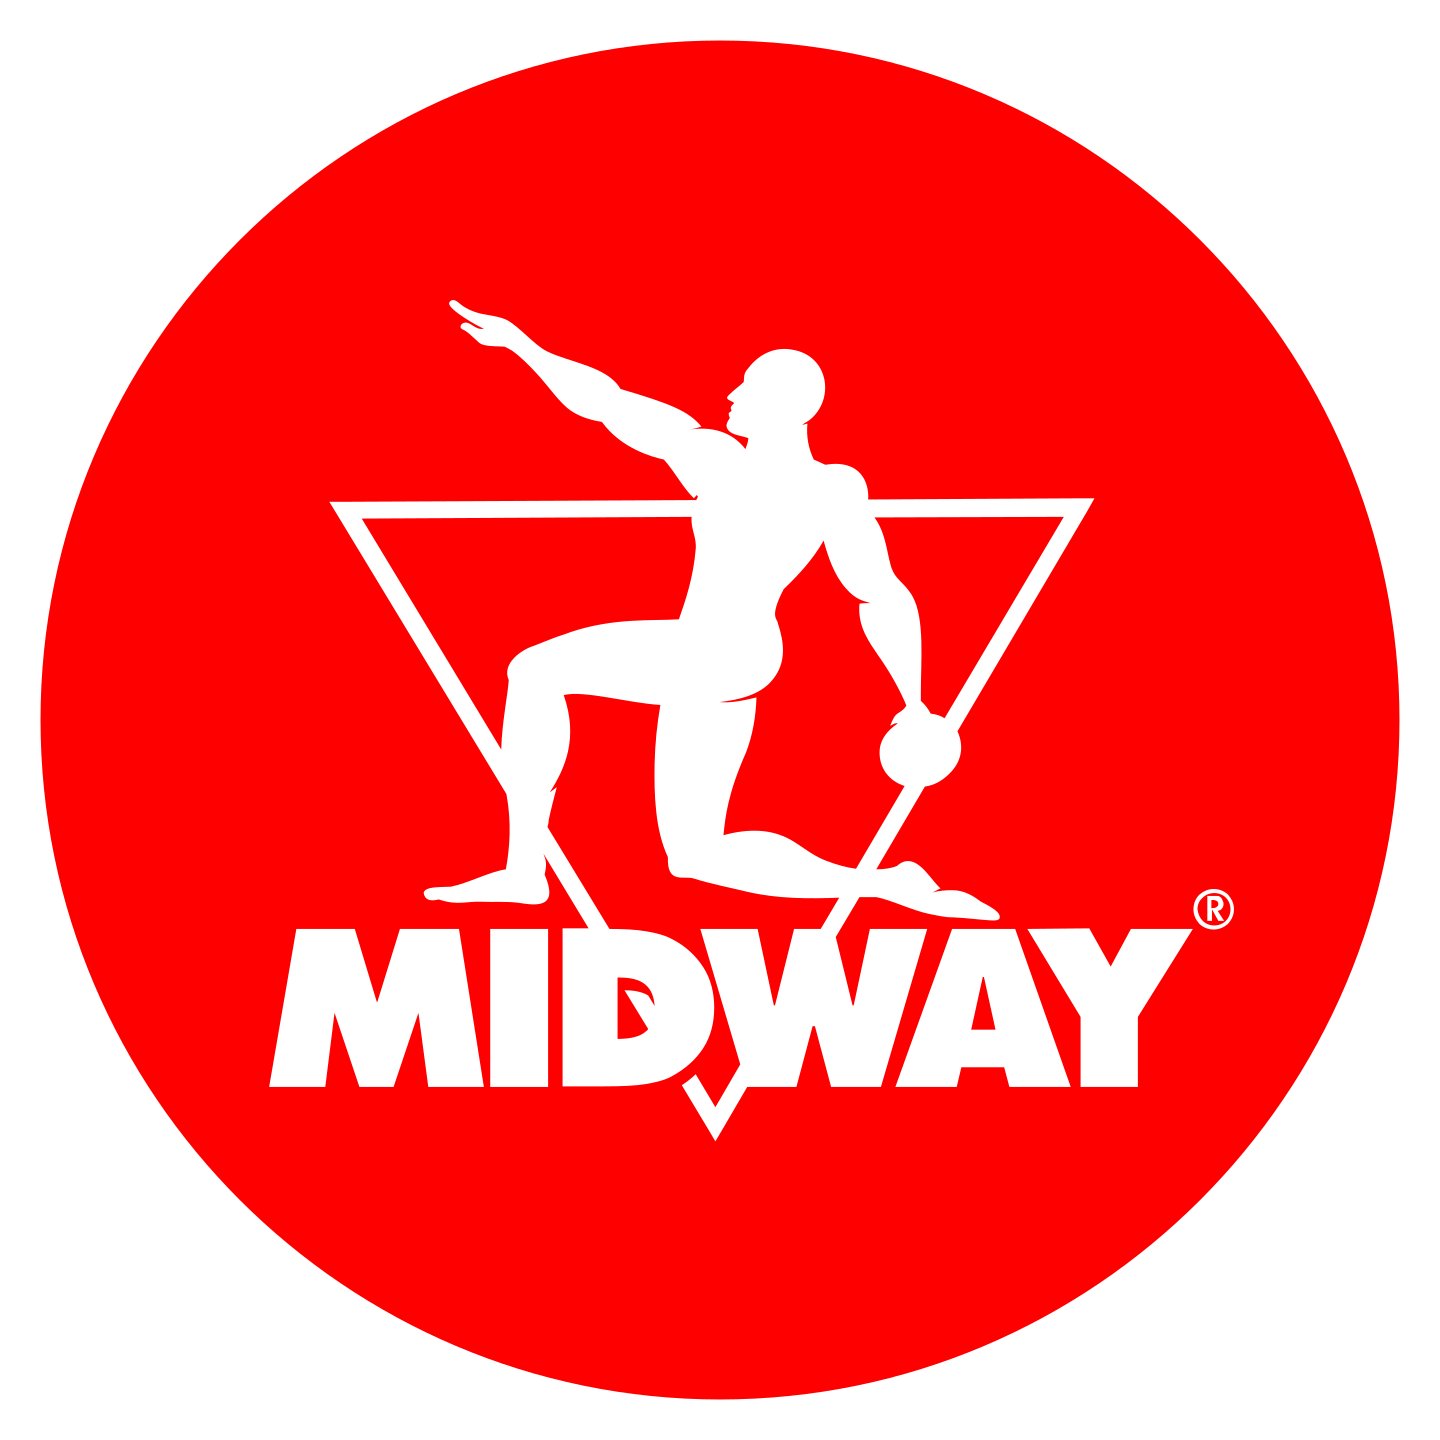 midway labs logo 2 - Midway Labs Logo